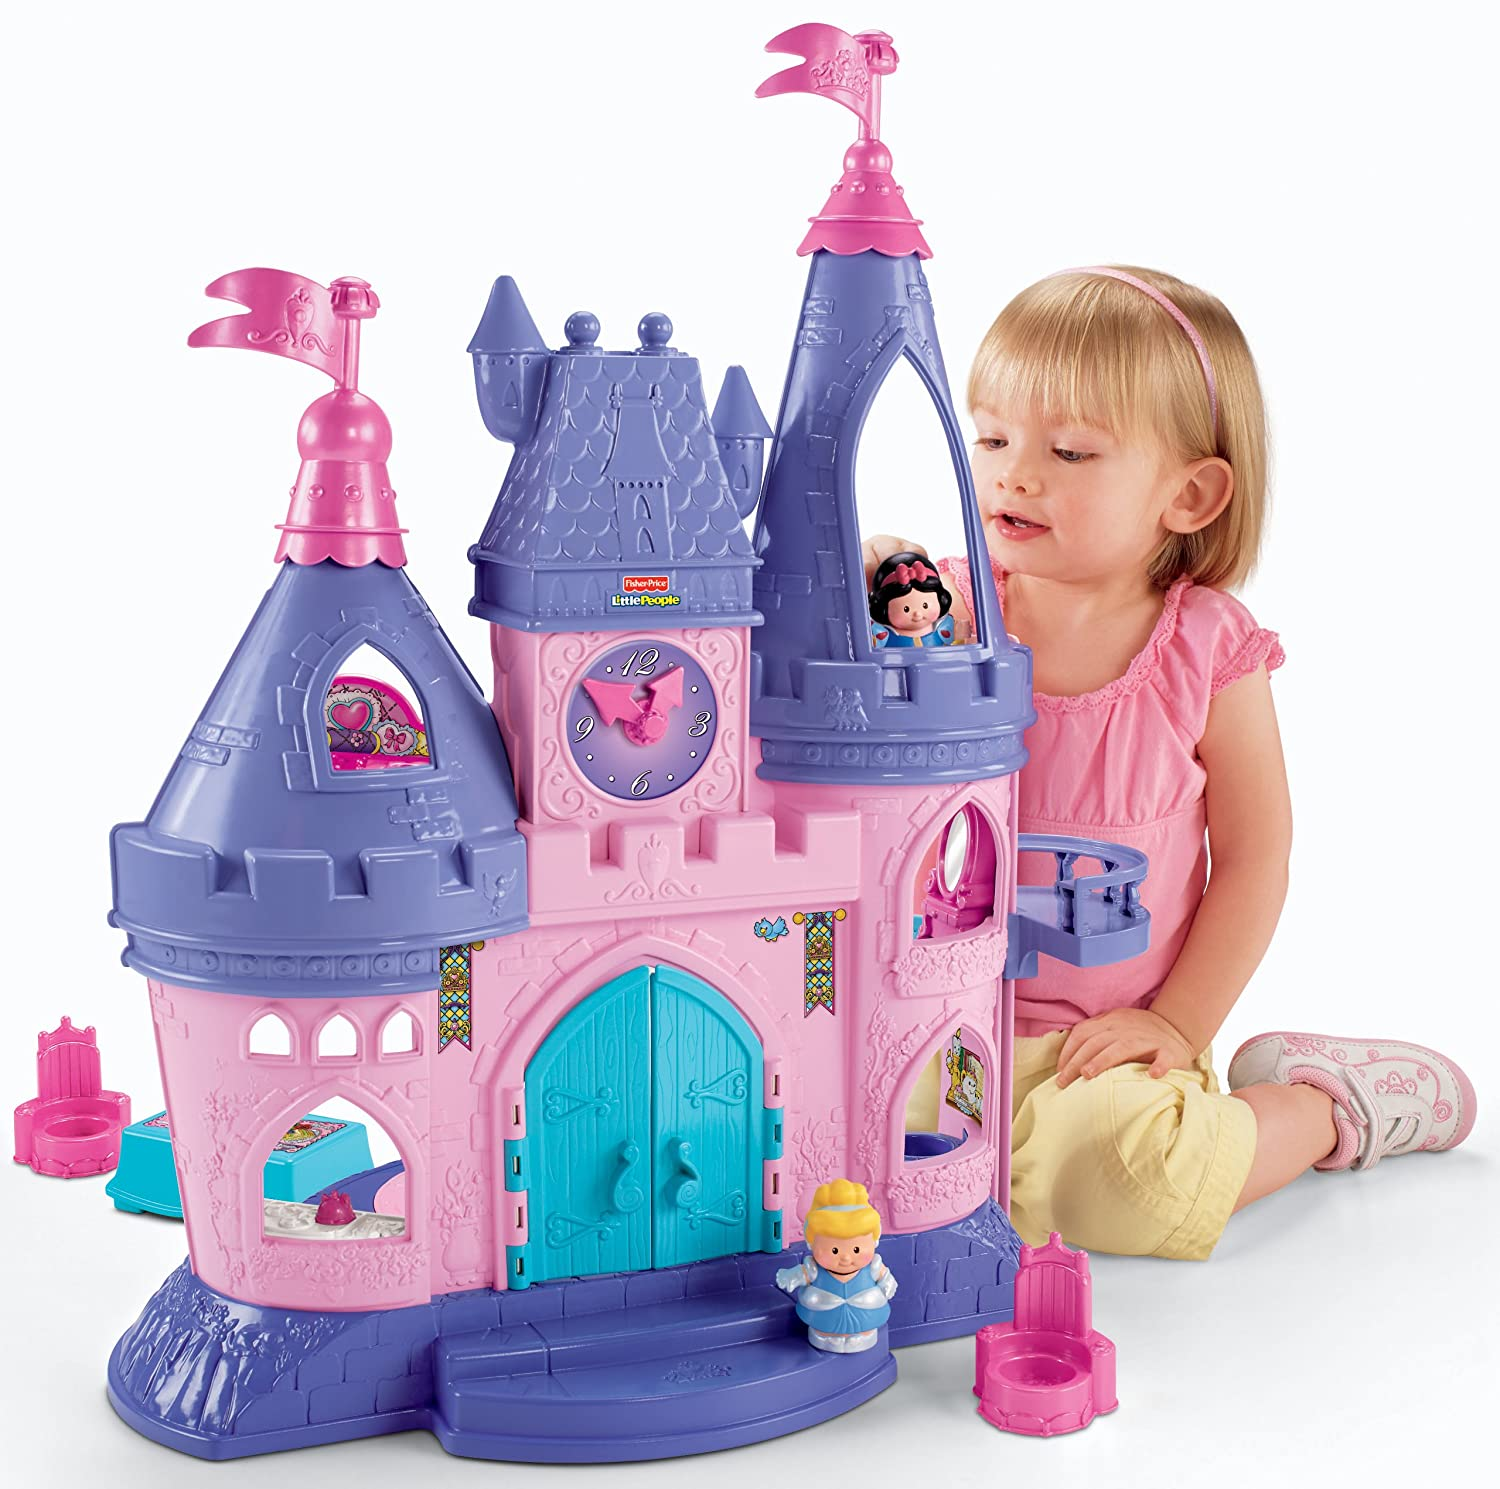 Best Little People Toys : Best gifts for year old girls in itsy bitsy fun